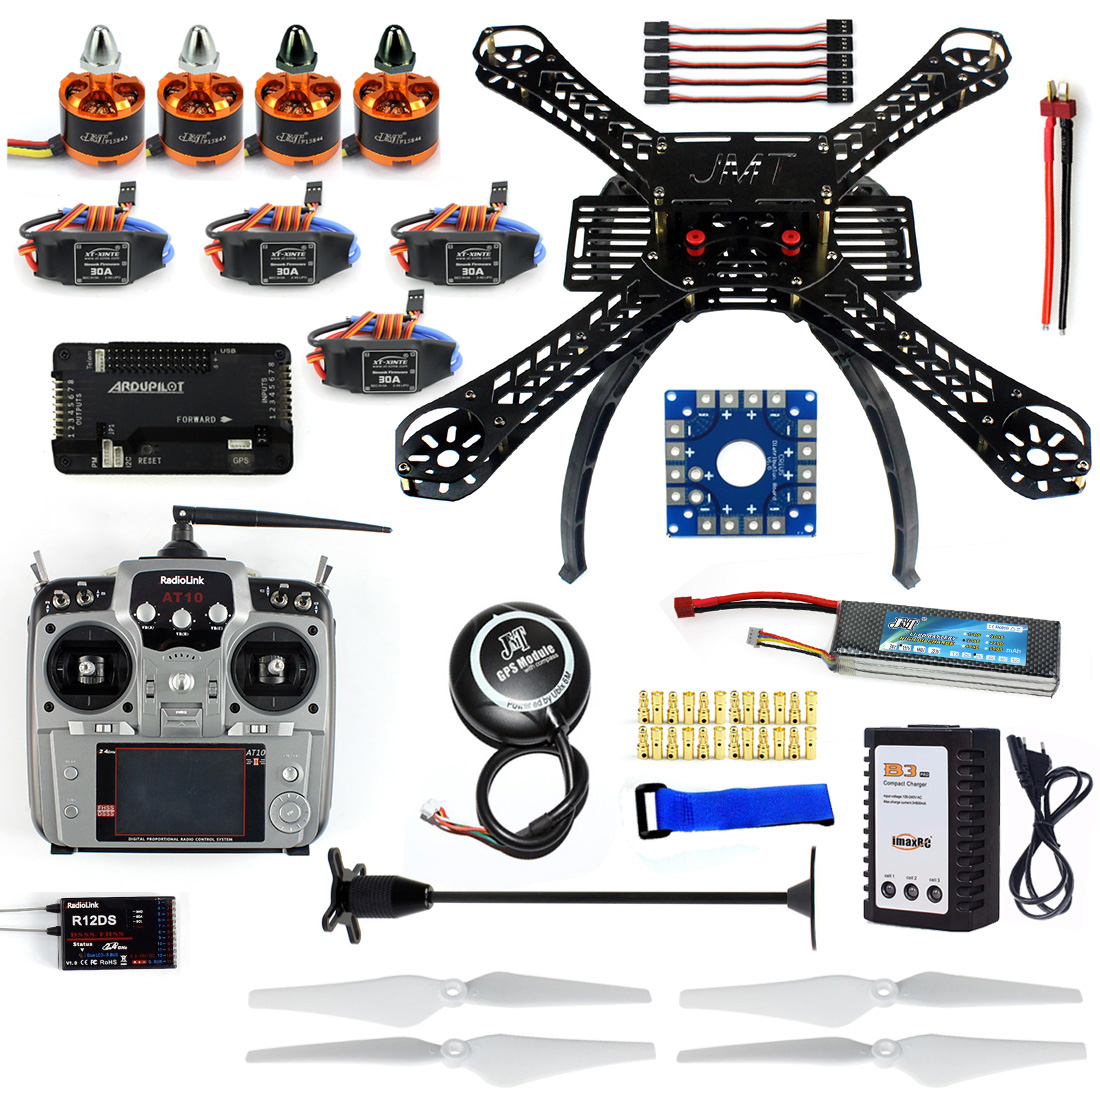 Kit complet bricolage RC Drone Quadrocopter X4M380L Kit cadre APM2.8 GPS AT10 TX F14893-NKit complet bricolage RC Drone Quadrocopter X4M380L Kit cadre APM2.8 GPS AT10 TX F14893-N